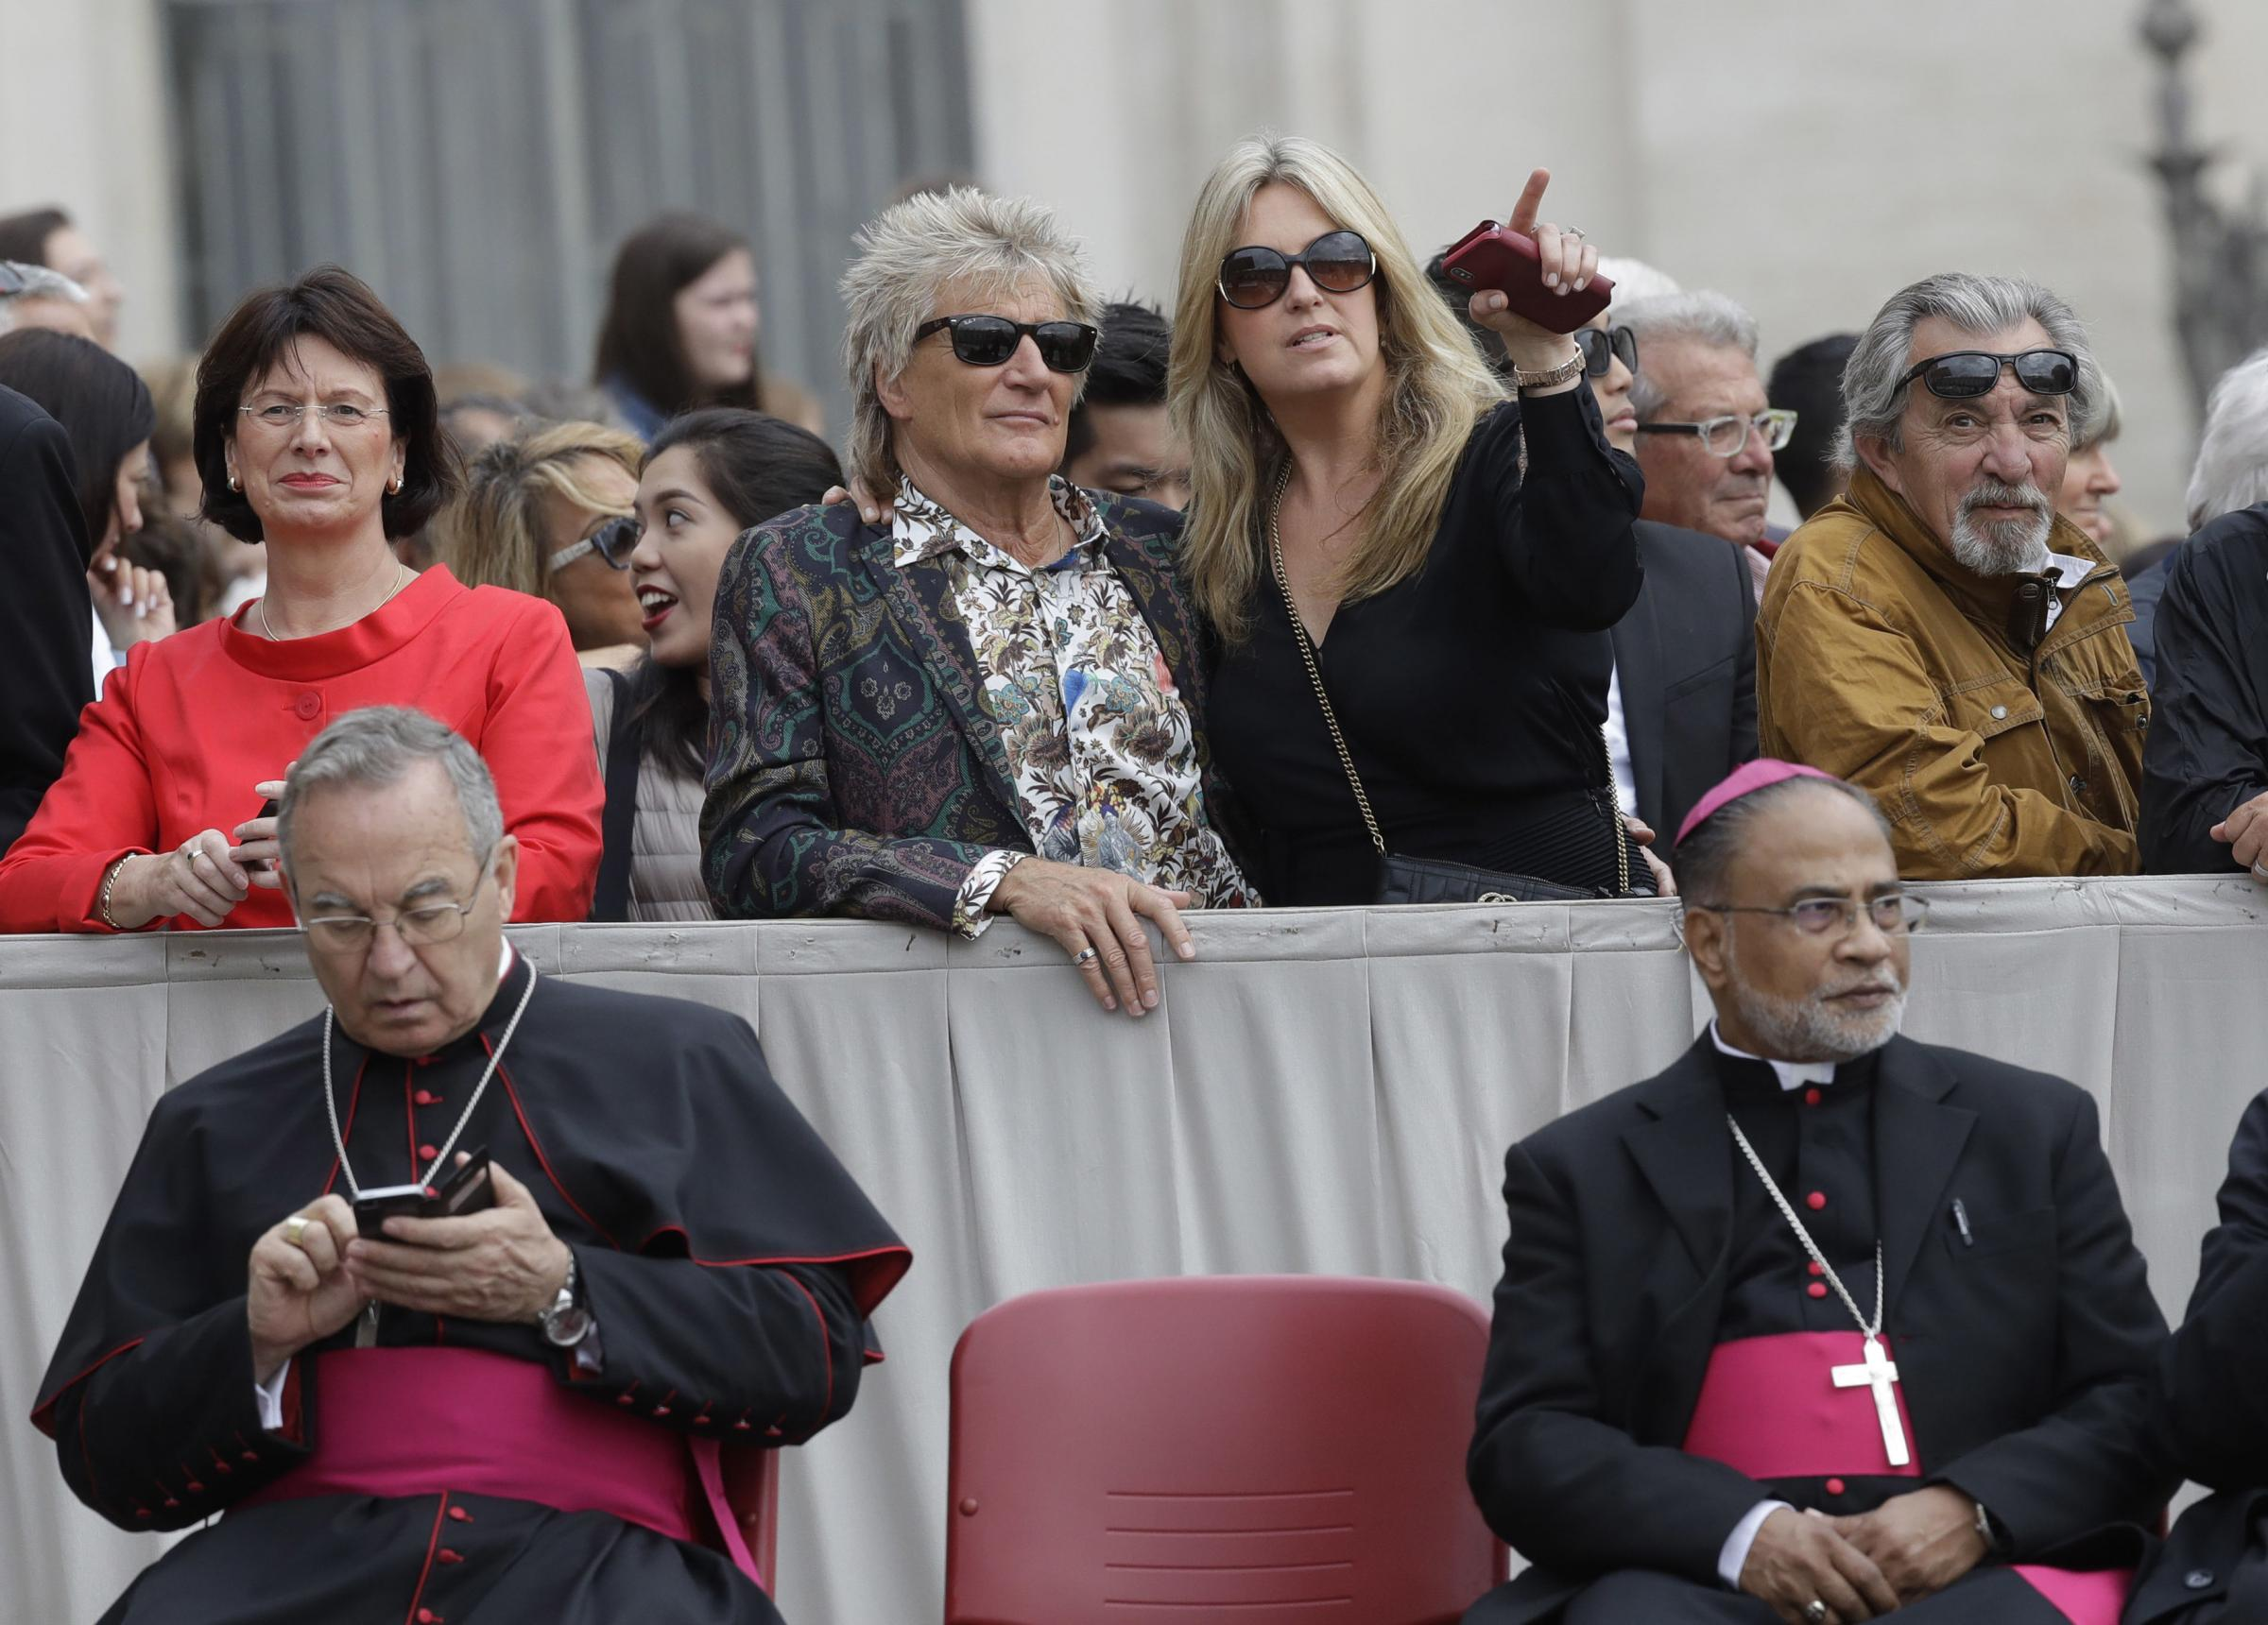 Celtic-daft rocker Rod Stewart waits to see Pope at Vatican with wife Penny